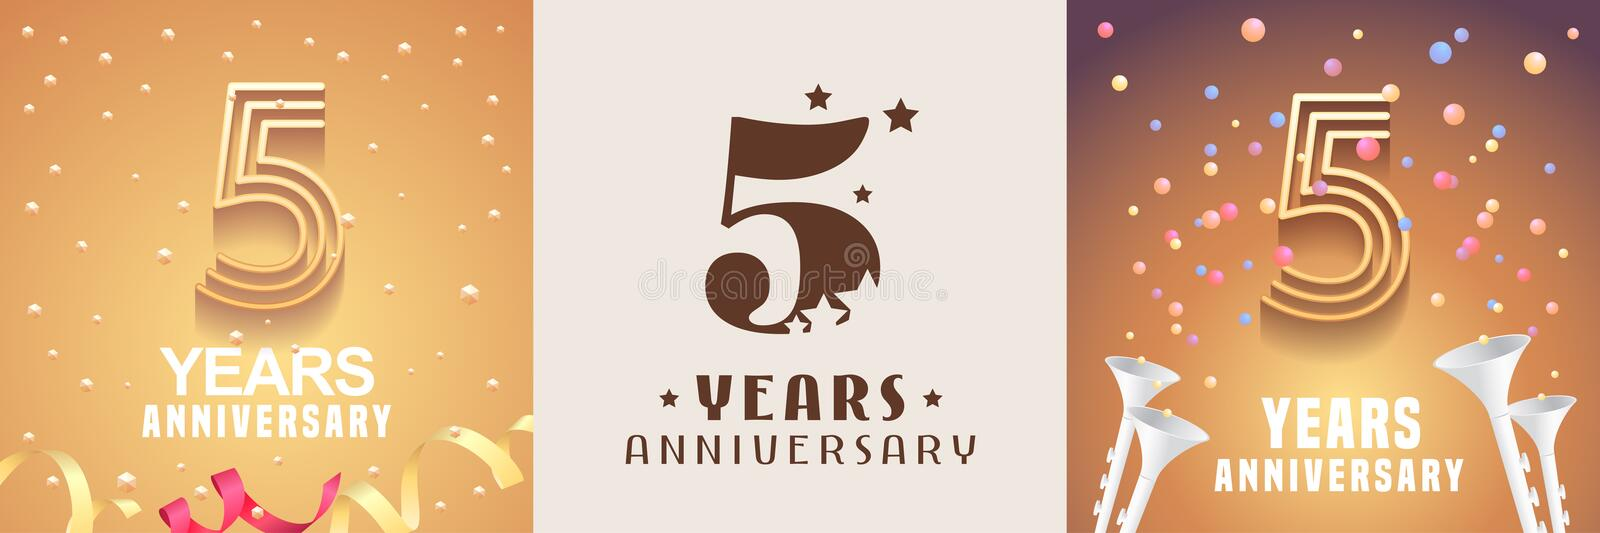 5 years anniversary set of vector icon, symbol. Graphic design element. With festive golden background for 5th anniversary stock illustration